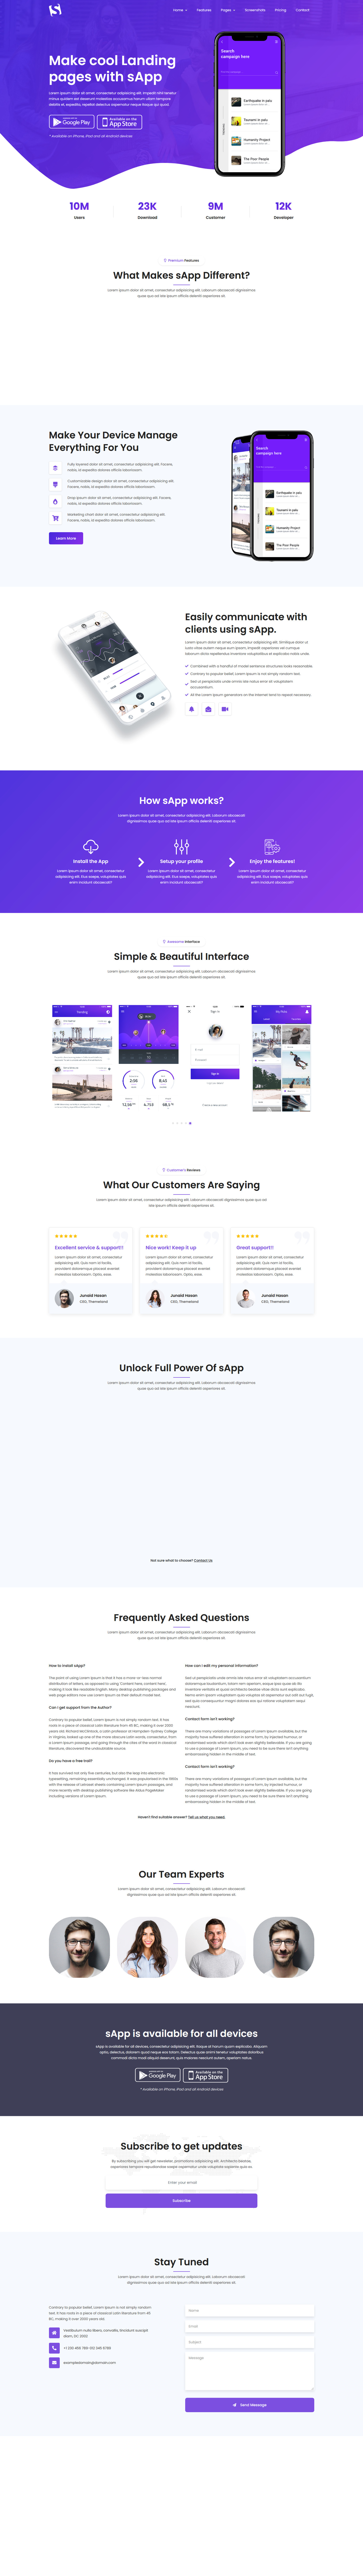 I will design, redesign a professional business website HTML, CSS using bootstrap4